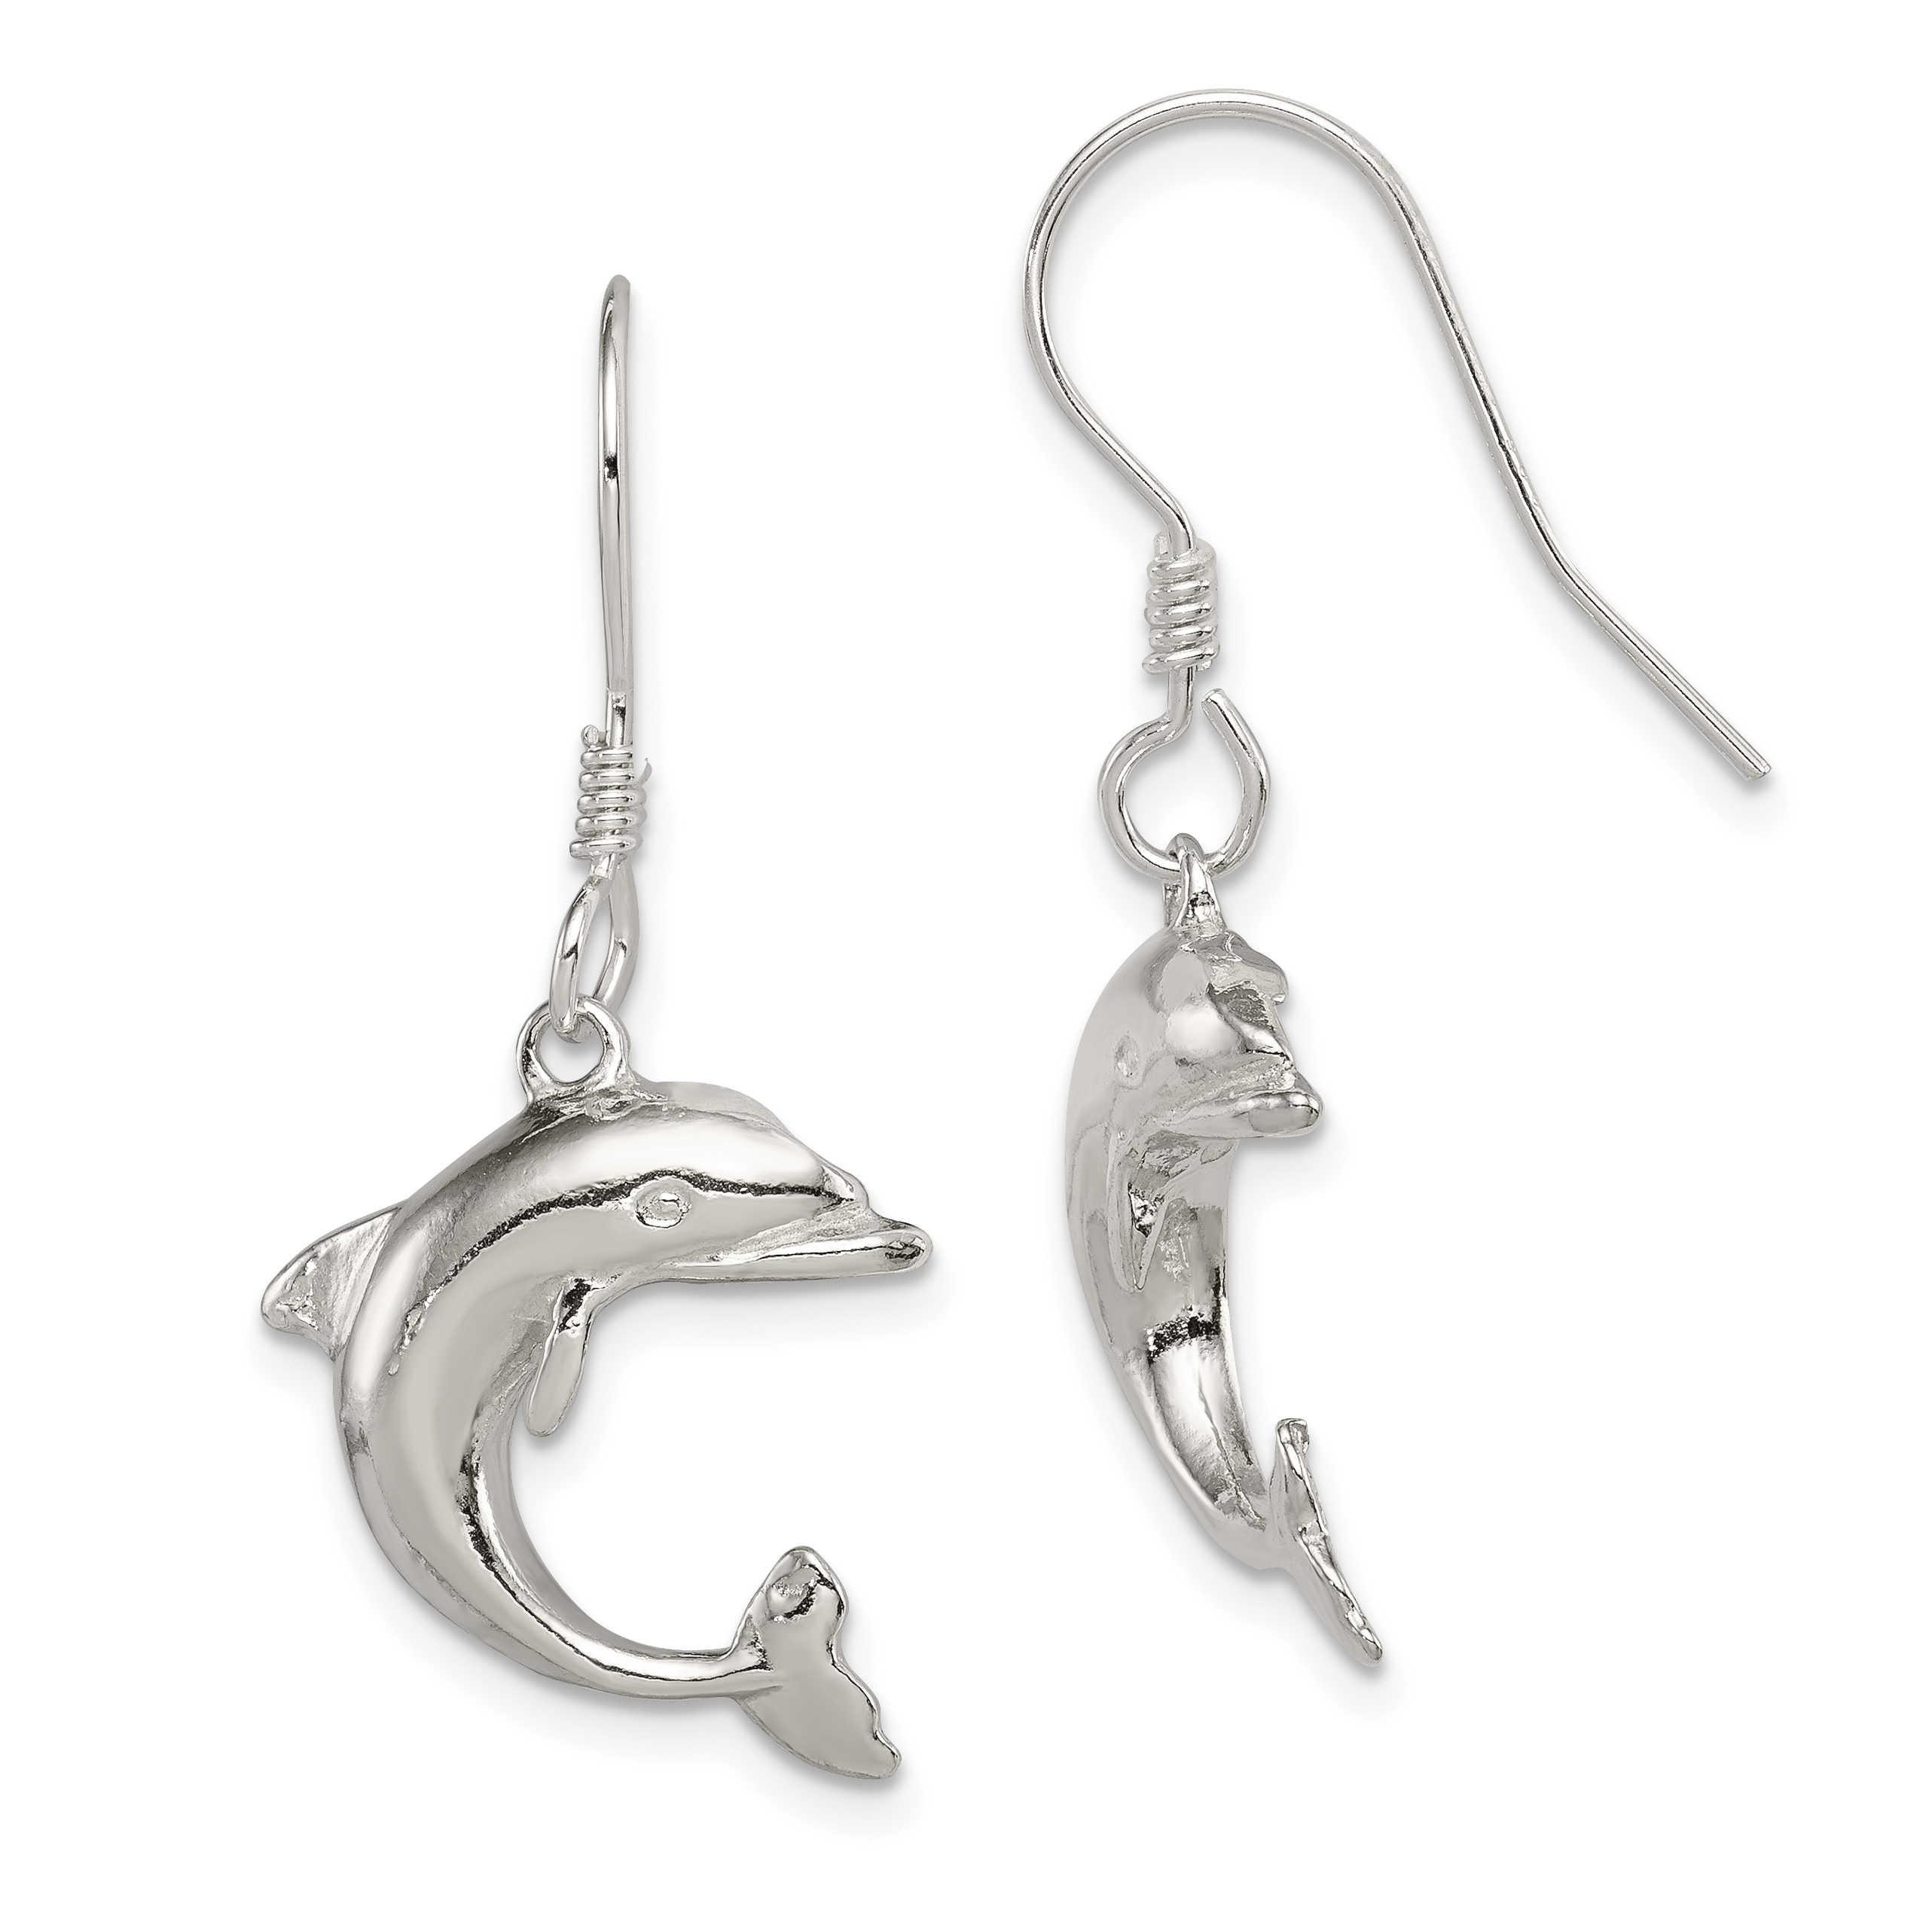 Sterling Silver Dolphin Earrings Weight 3 96 Grams Length 30mm Width 17mm